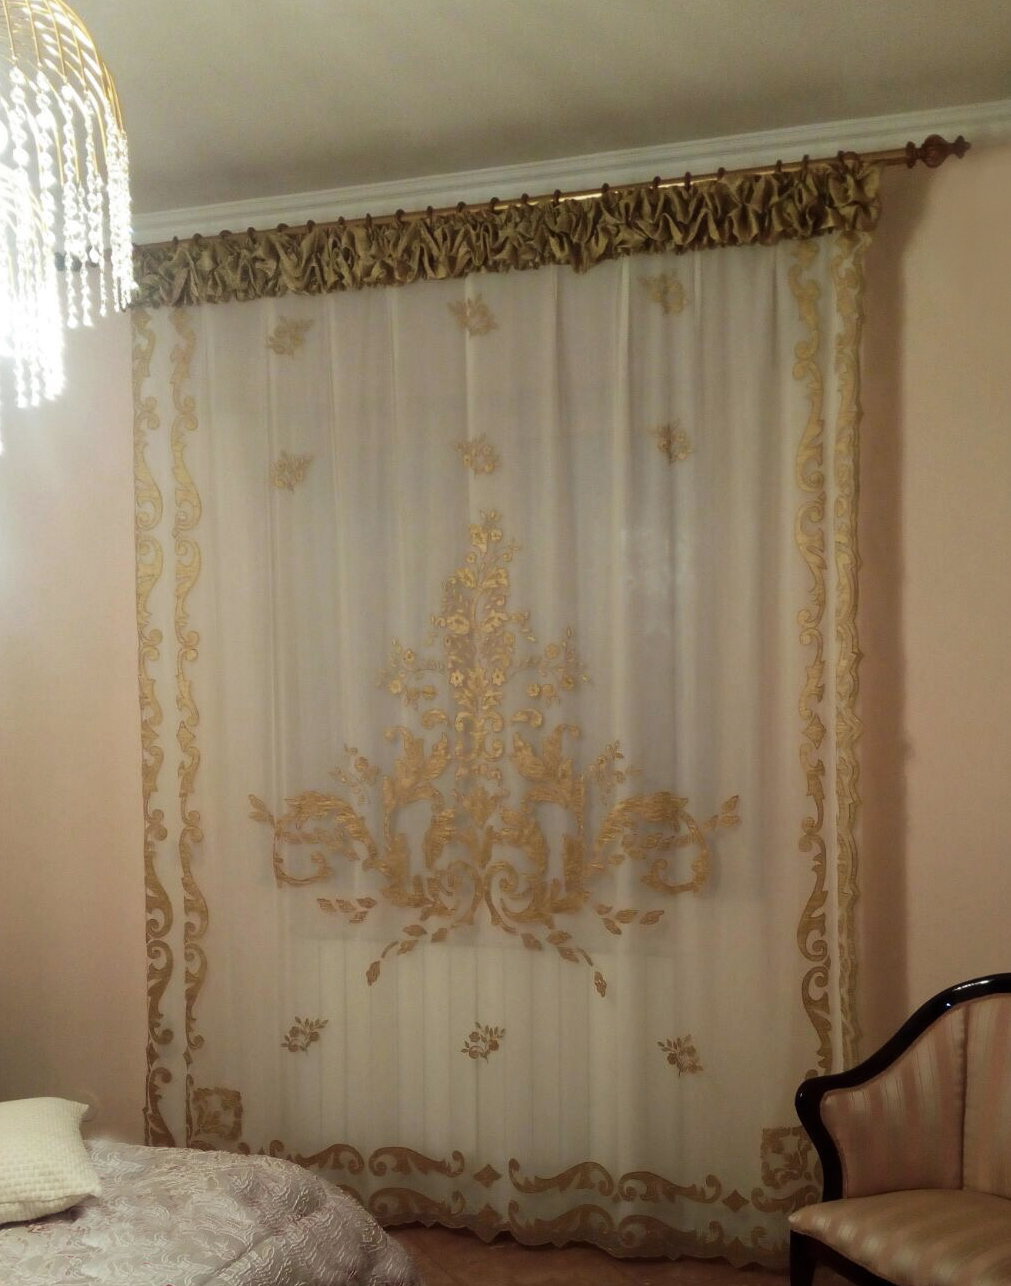 Nuvola Lilium  2B Rich luxury curtain